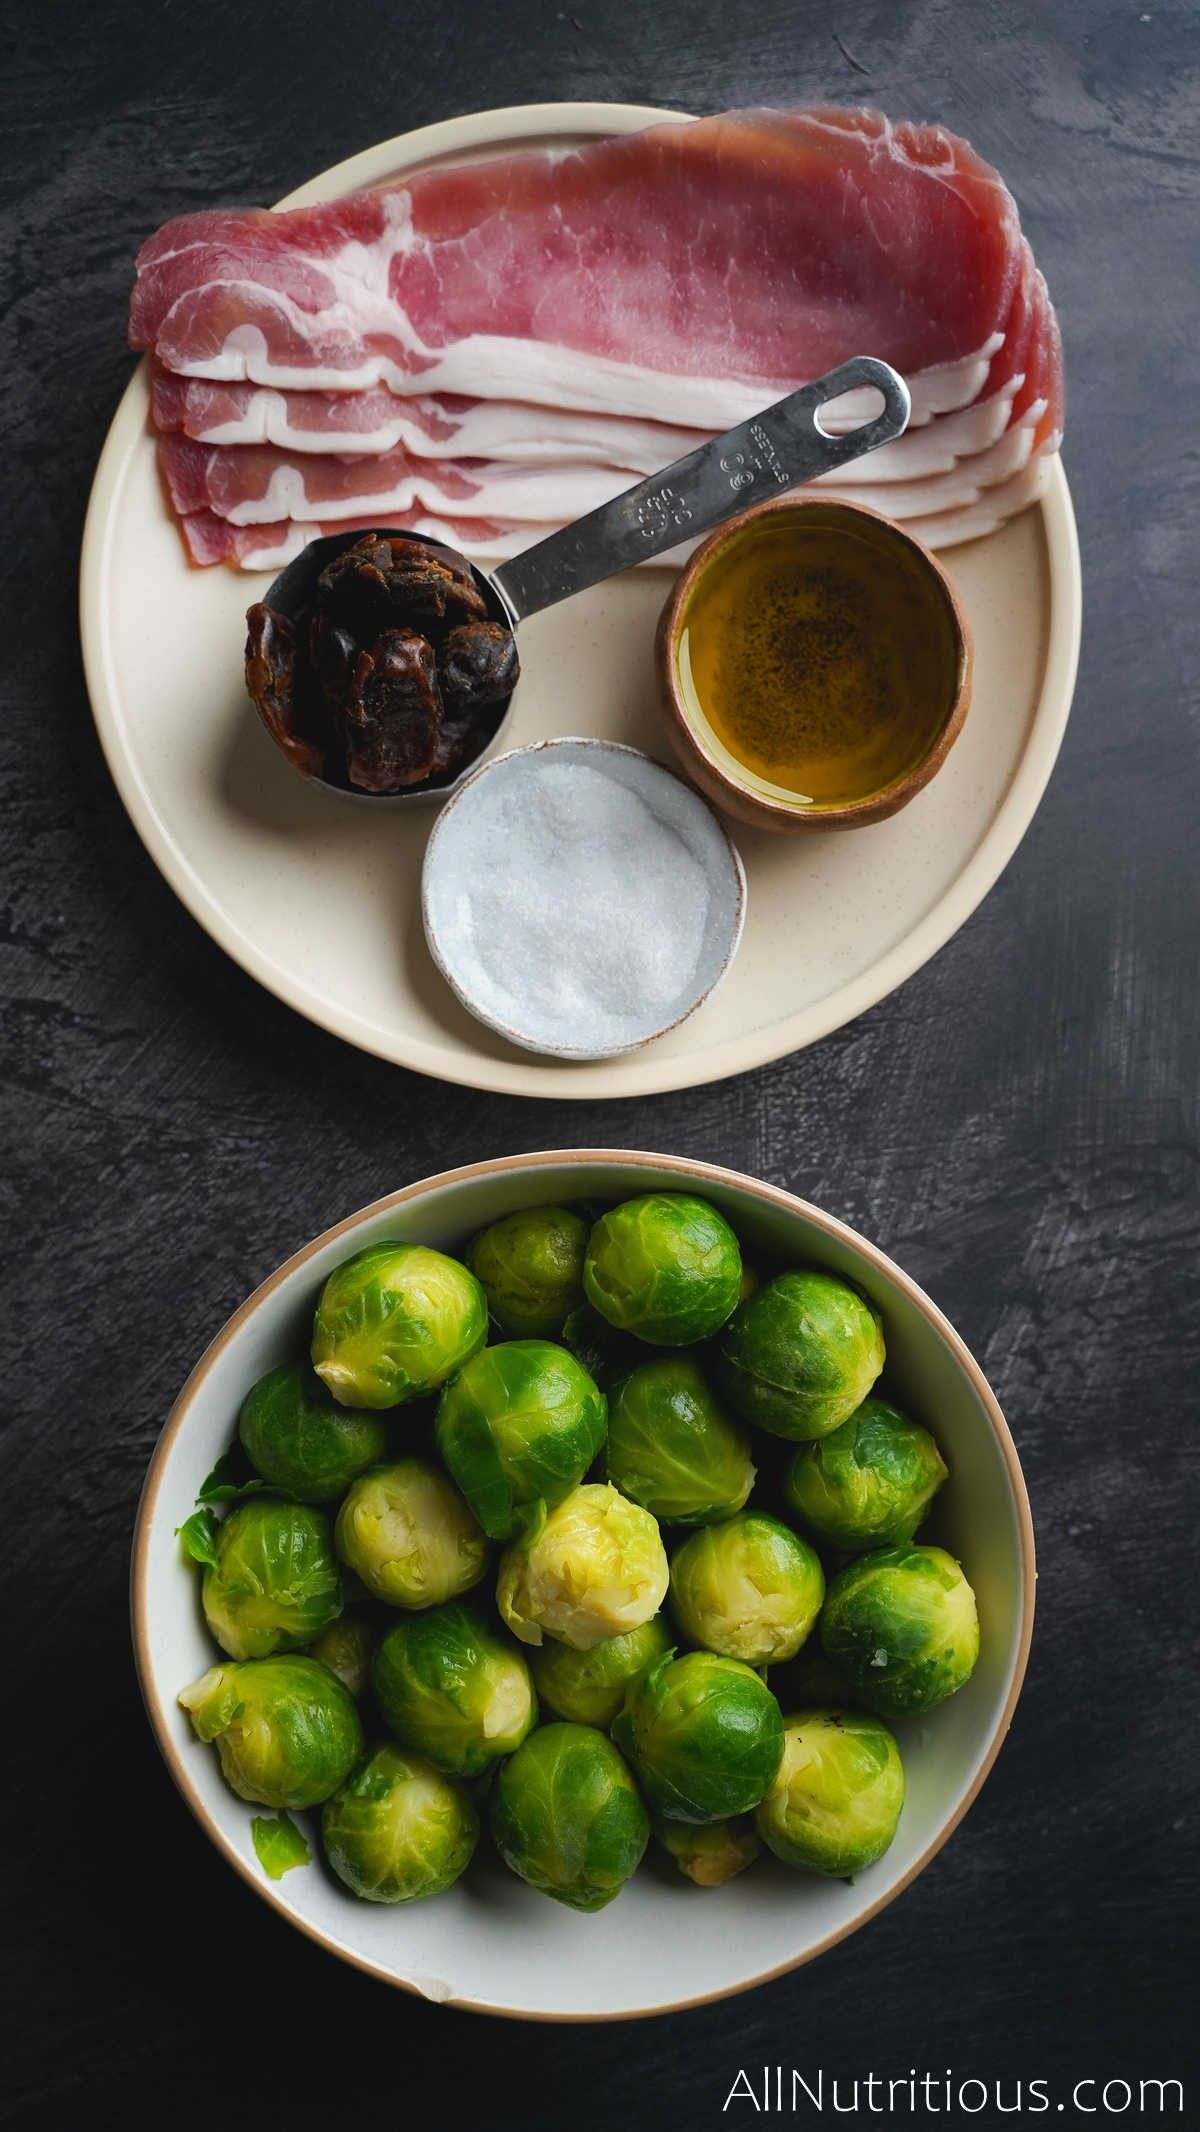 ingredients for brussels sprouts dish